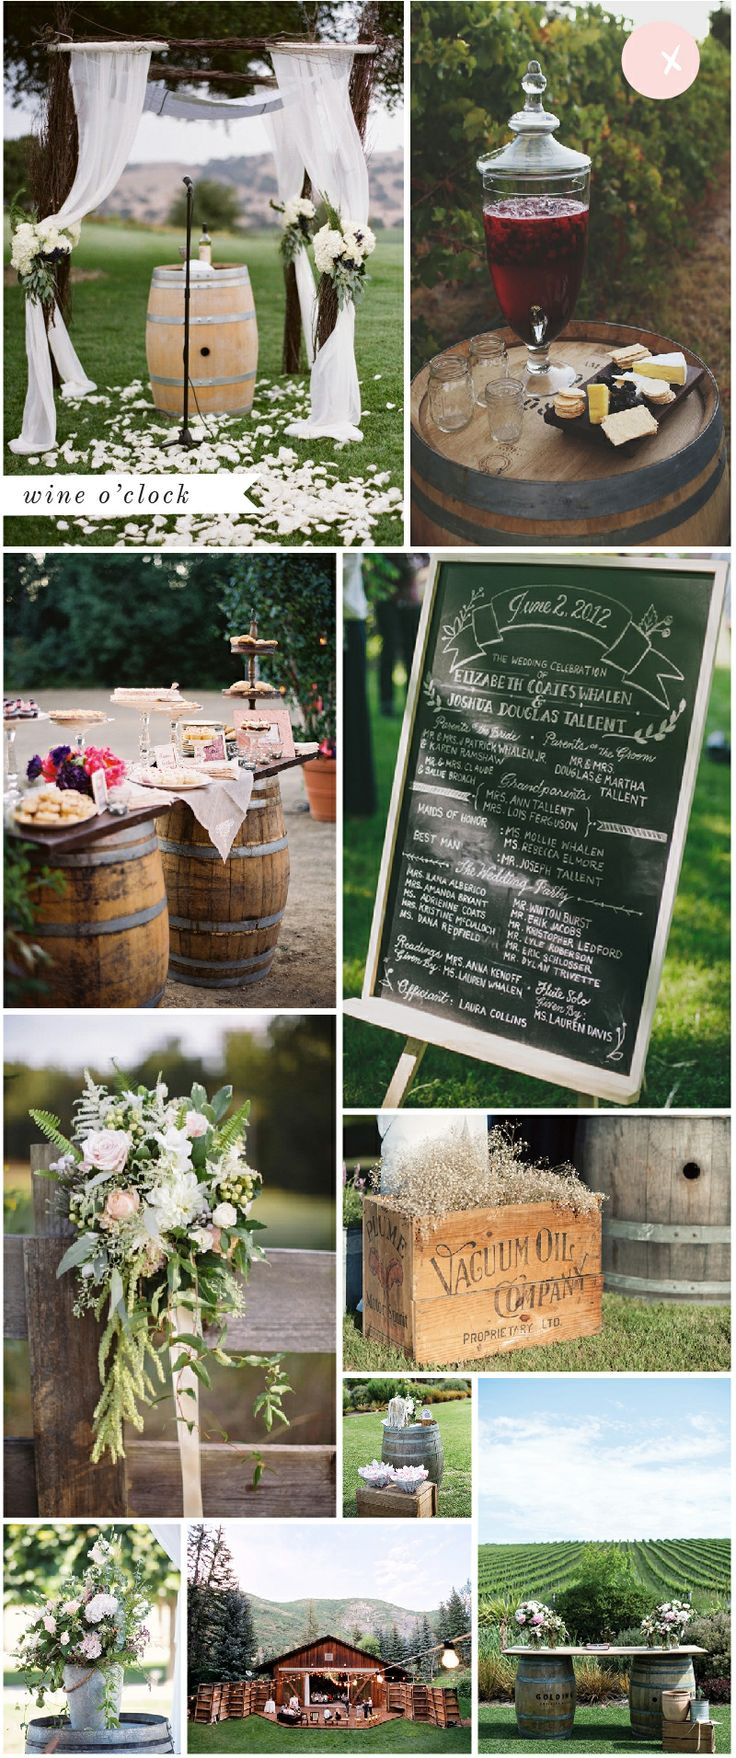 Wine Barrel Wedding Inspiration  We have many available for you to rent at FTV so we can help you create this look yourself!  www.tracyfowler.com